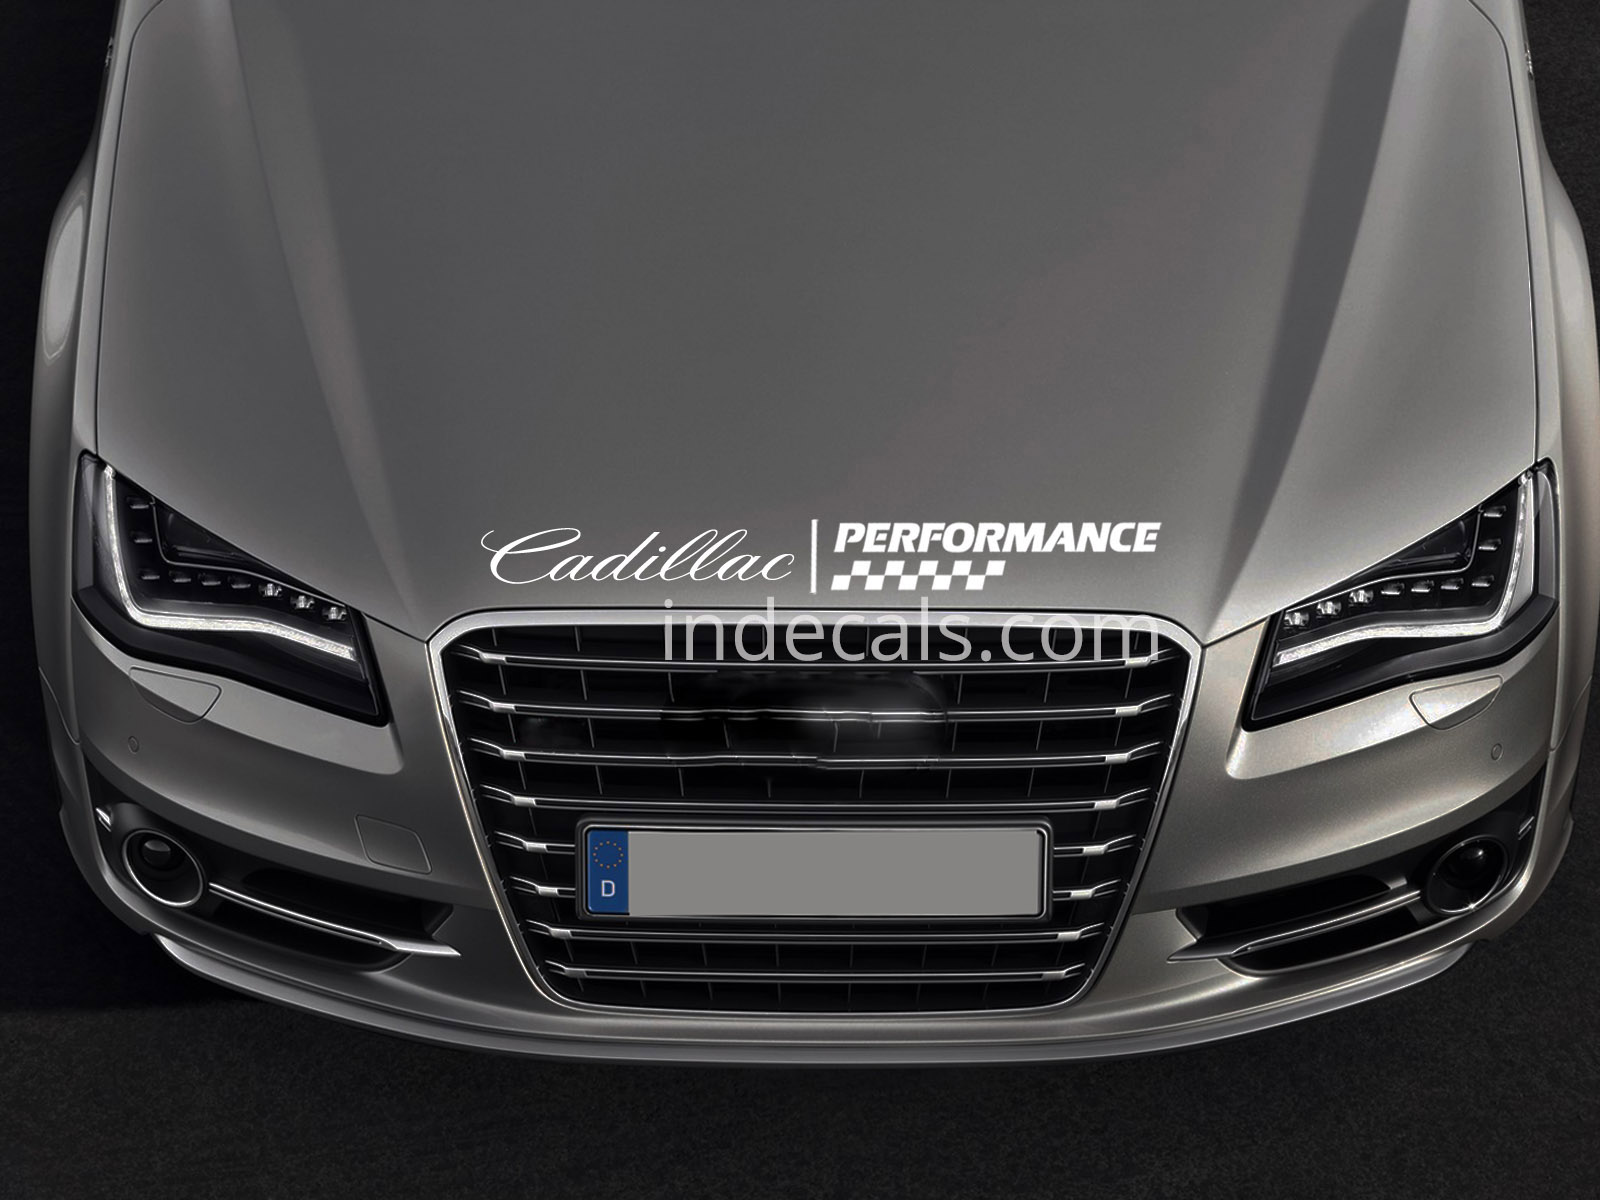 1 x Cadillac Peformance Sticker for Bonnet - White